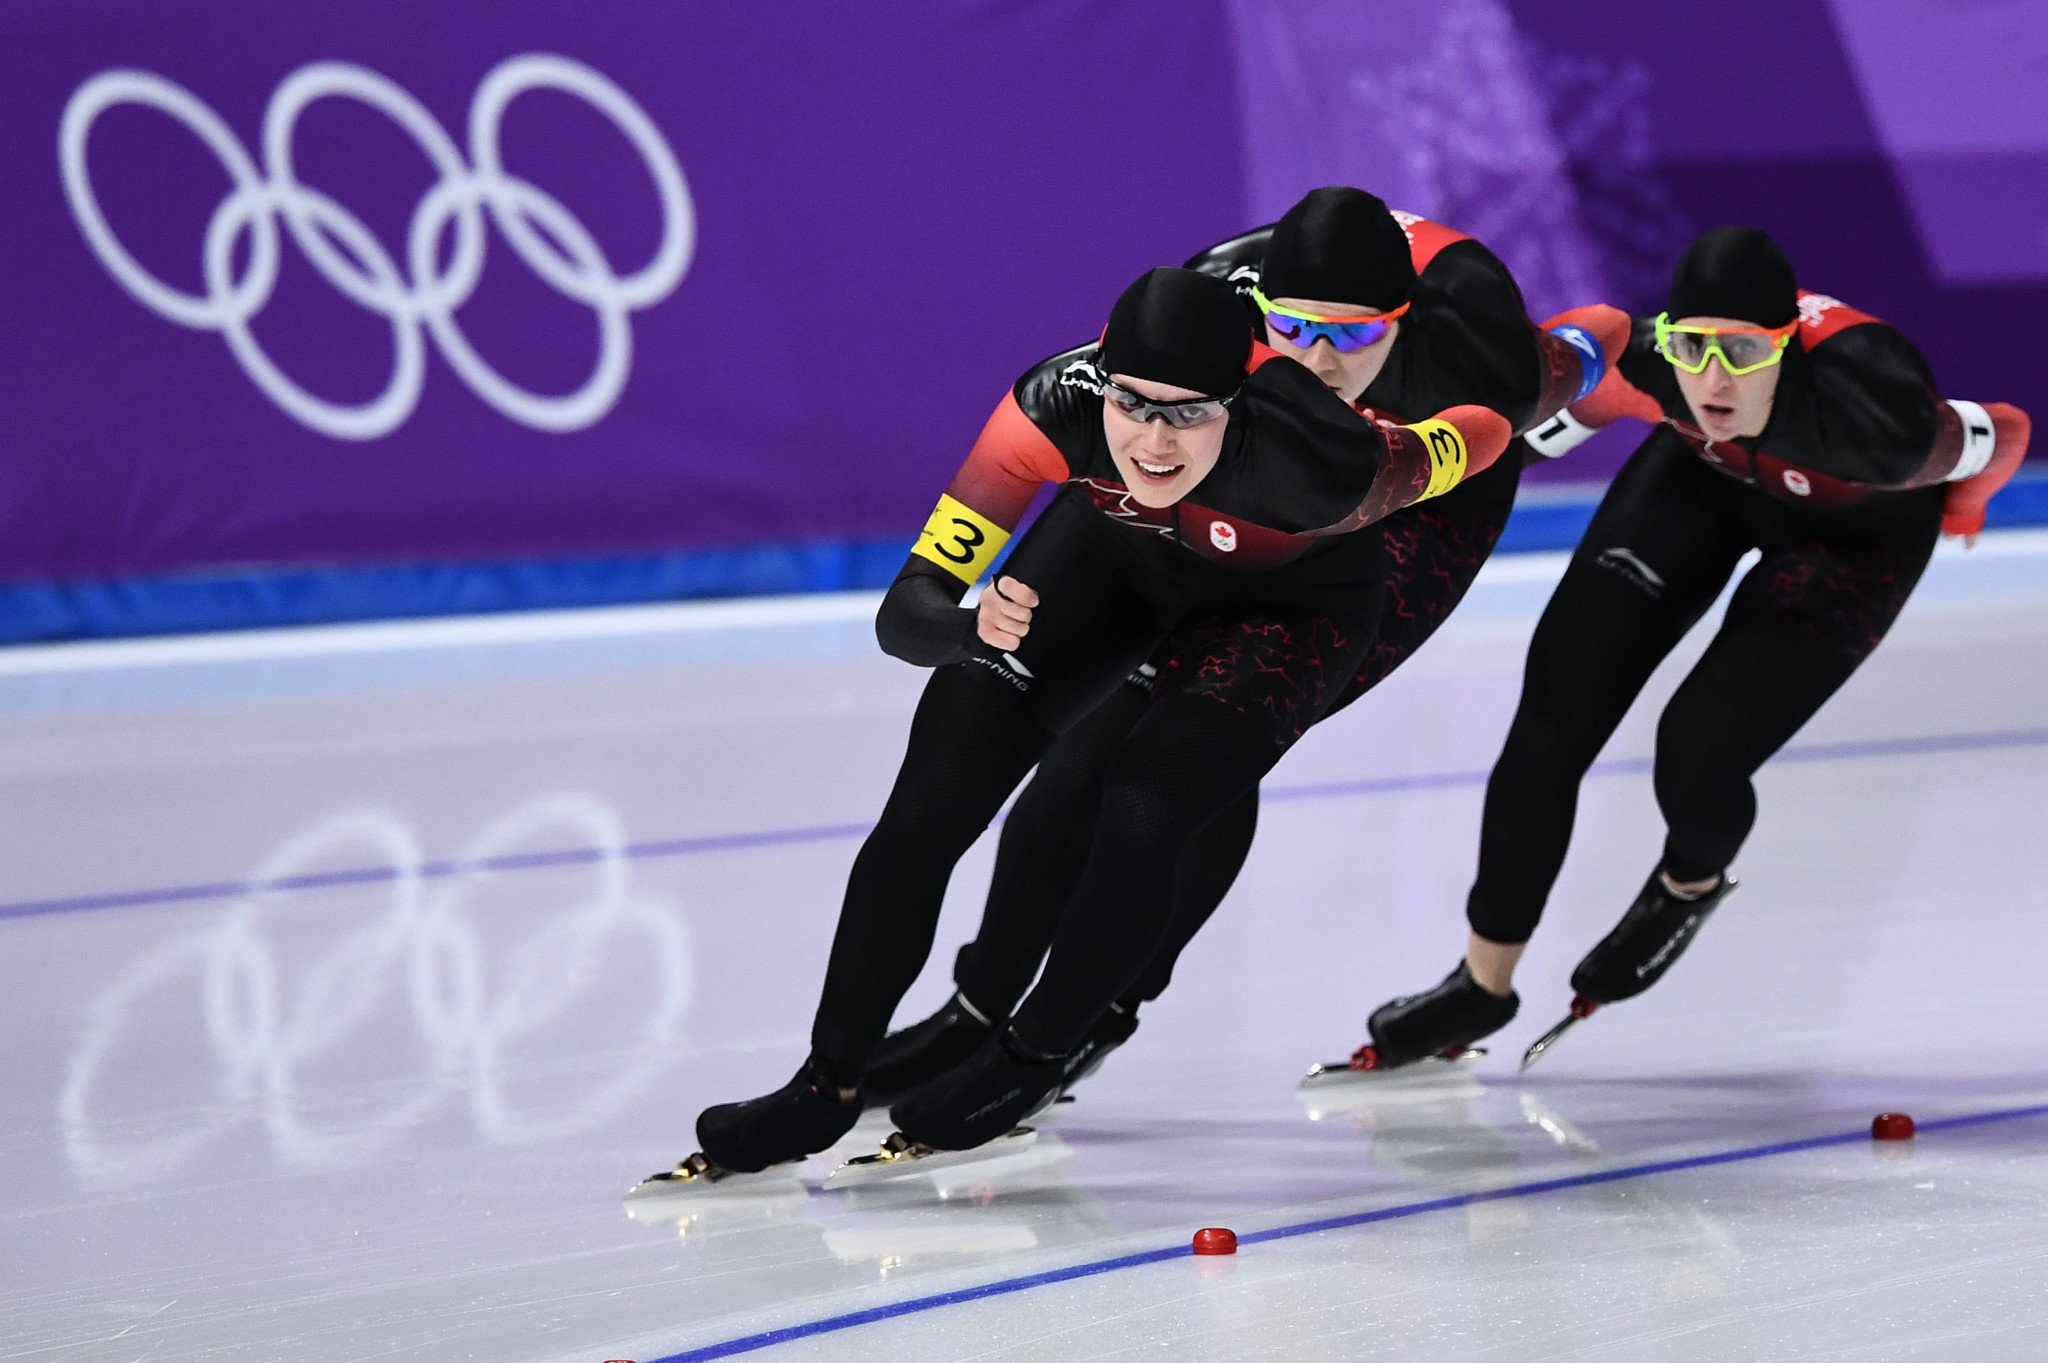 Canadian Morrison announces retirement from speed skating